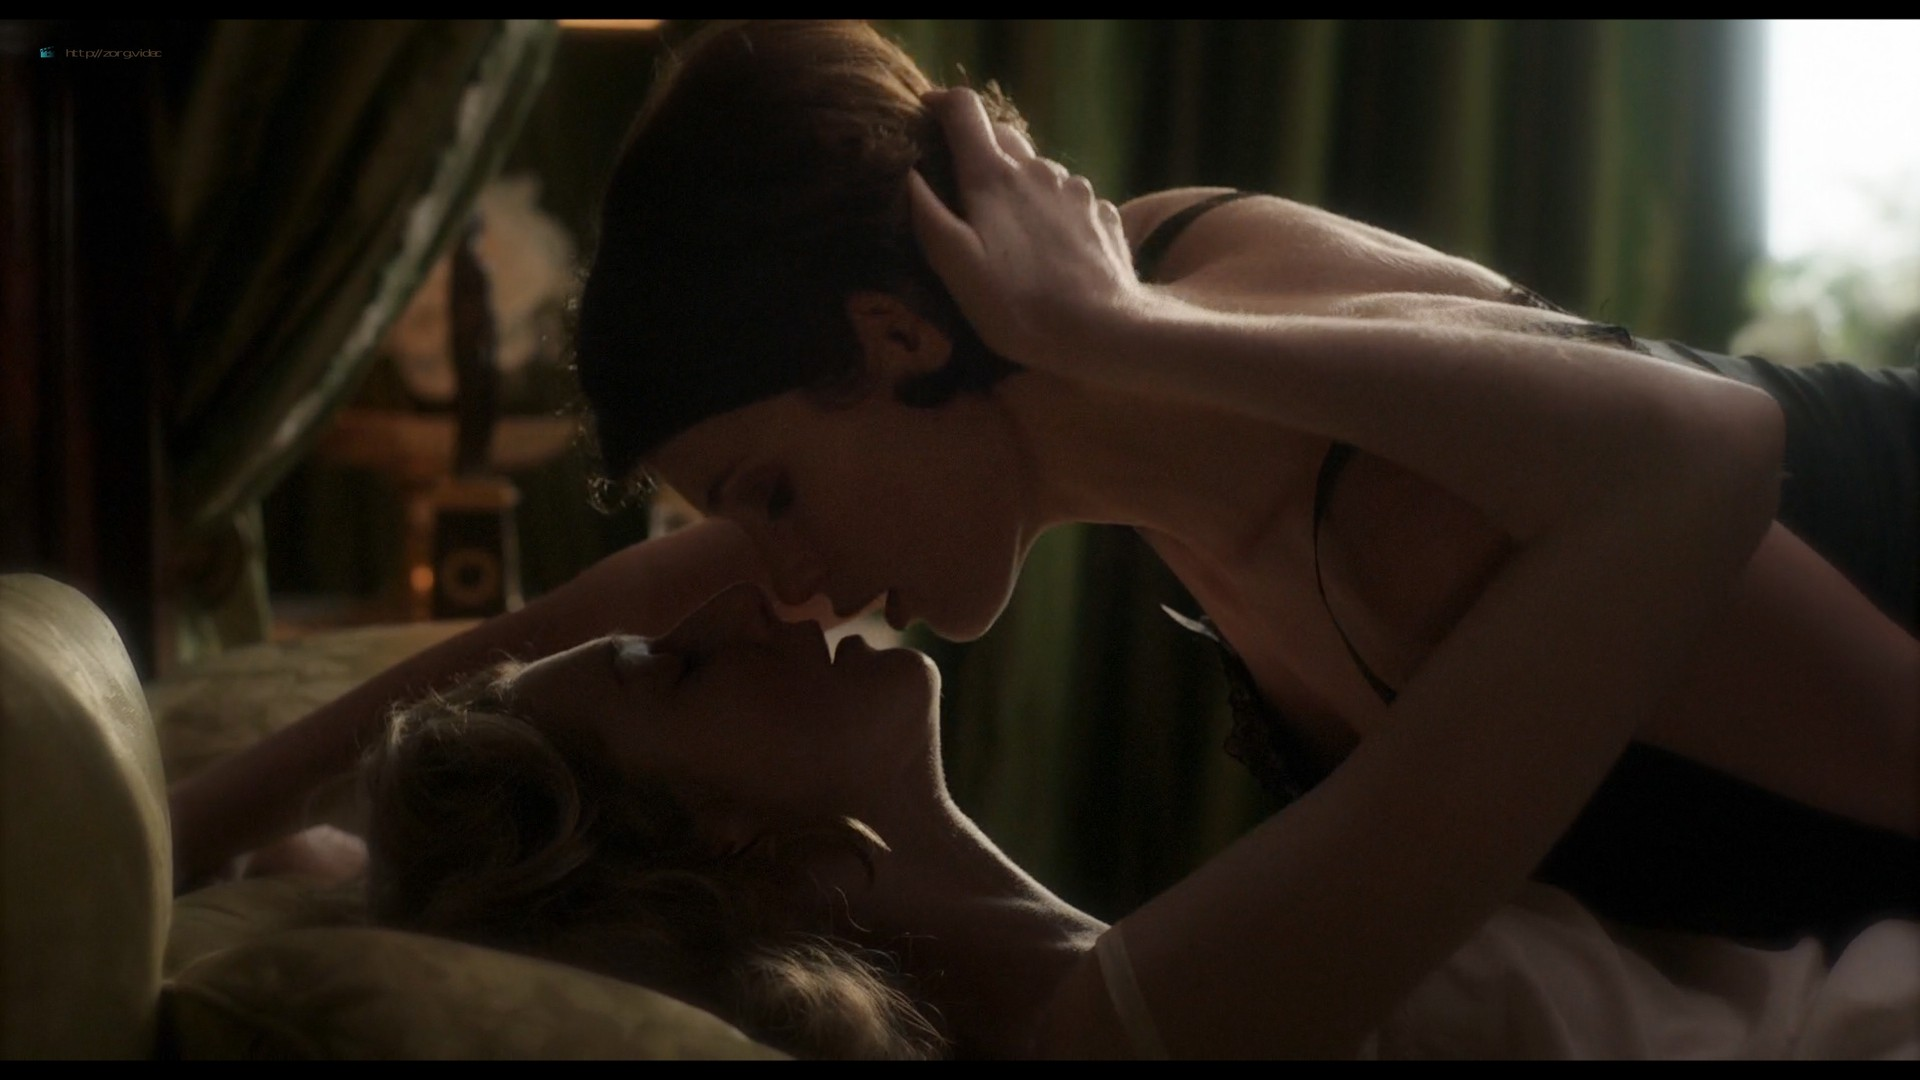 Elizabeth Debicki nude and Gemma Arterton lesbian sex - Vita & Virginia (2018) HD 1080p Web (11)